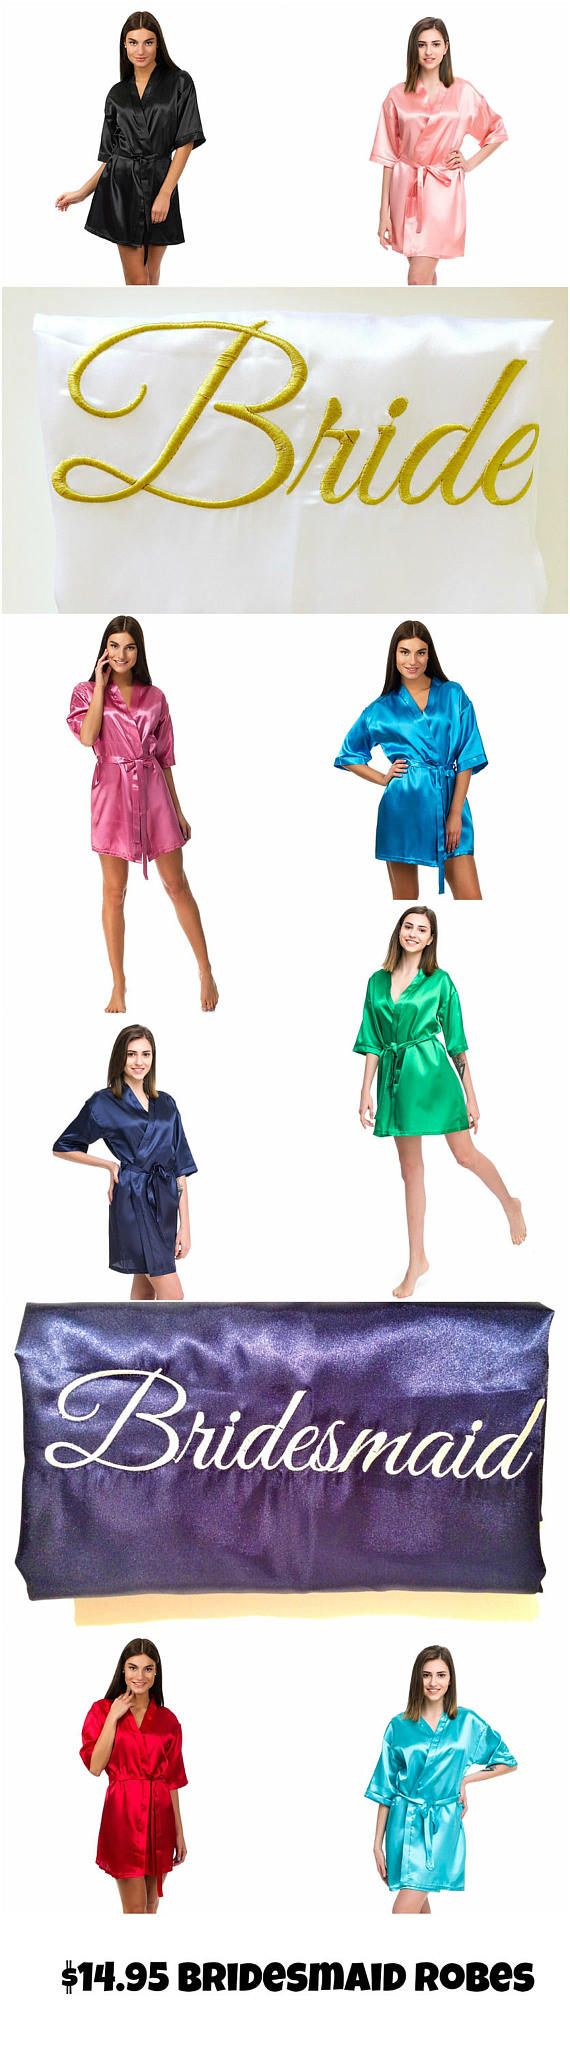 Amazing satin bridesmaid robes at a reasonable price:  • 20 vivid colors including white, ivory, light blue, gold, blush pink, red, coral, navy, black, burgundy.  • Personalization with initial, monogram, name, title, date available.  • High-quality 100% polyester satin, machine washable (delicate).  • Production time is 1-2 weeks for plain robes, up to 3 weeks for personalized robes.  • All orders shipped by airmail international, 2-3 weeks to most destinations. Expedited shipping also…